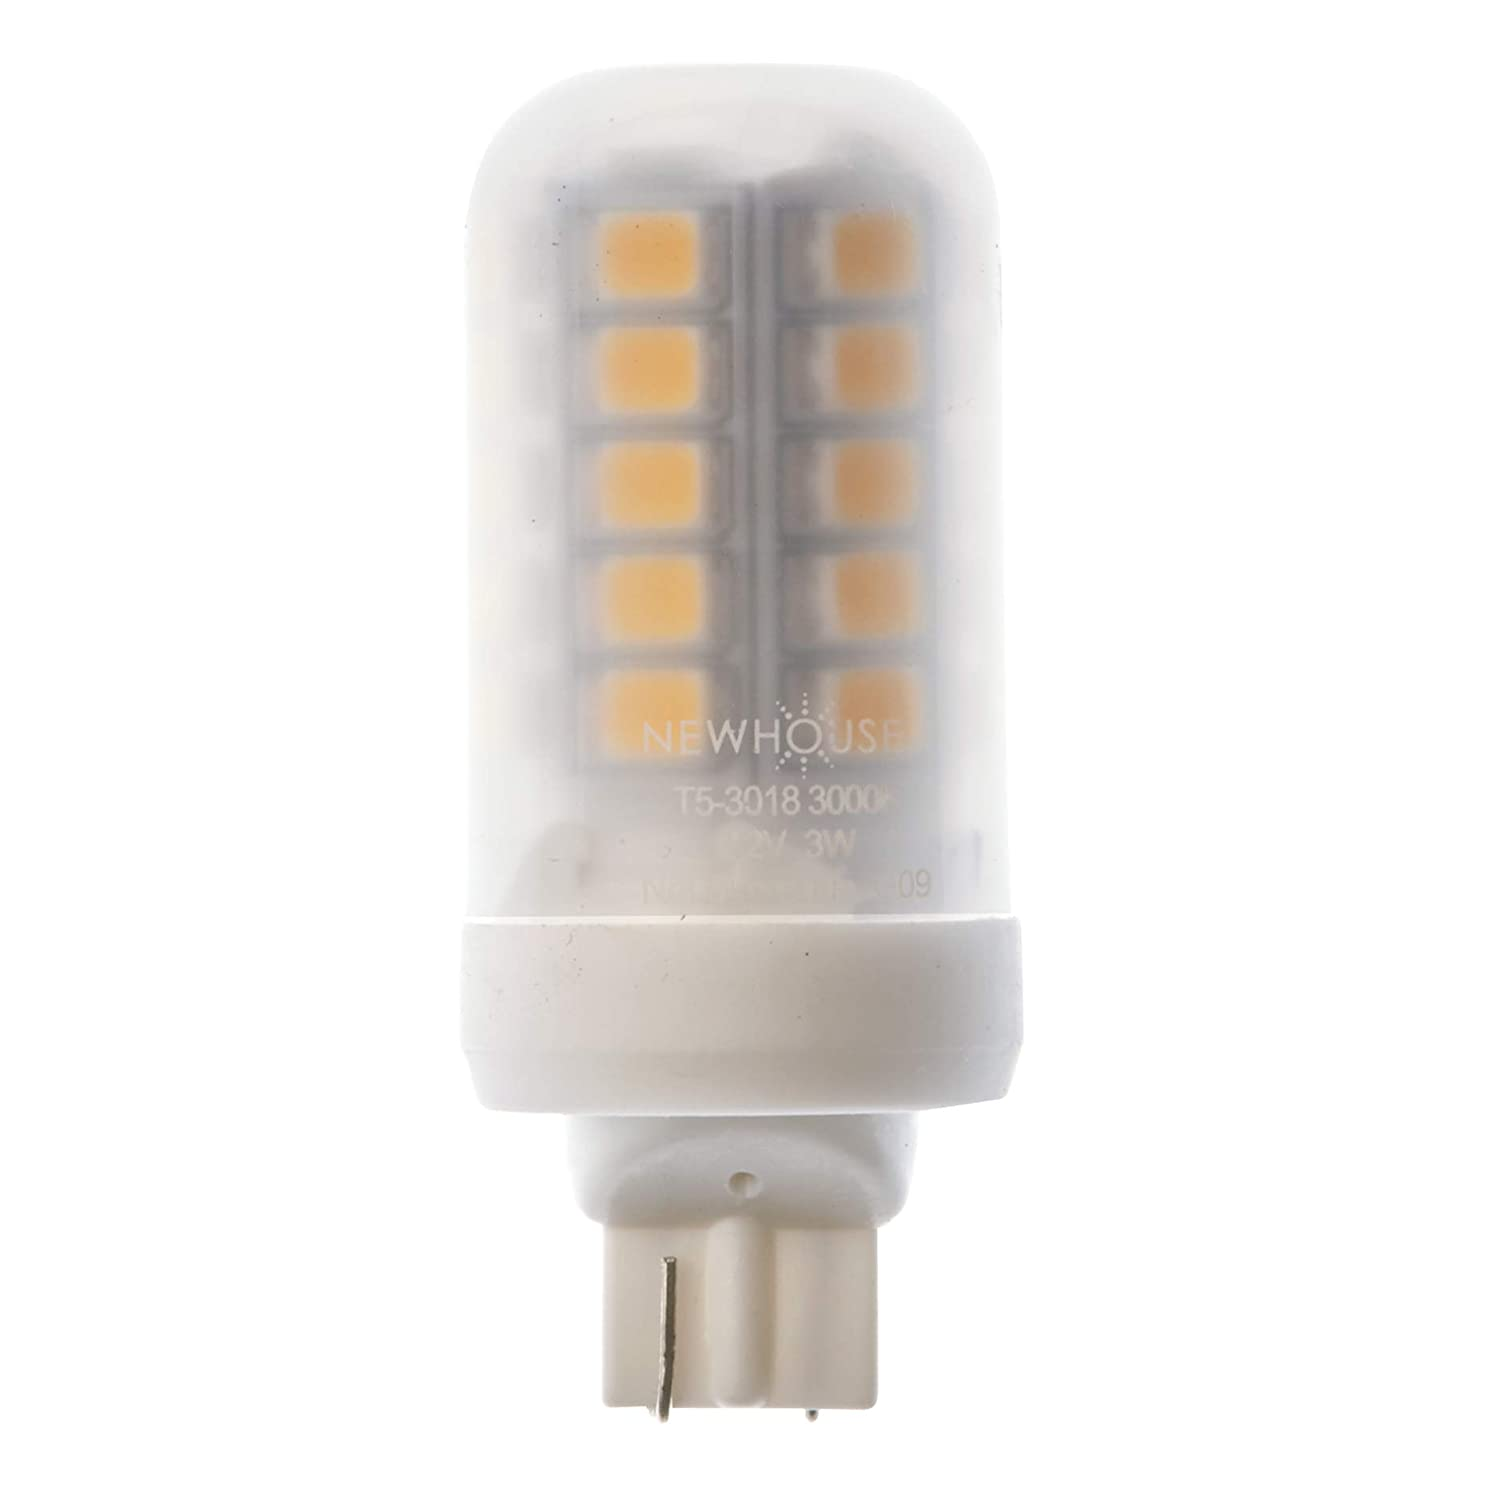 Newhouse Lighting T5 LED Bulb Halogen Replacement Lights, 3W (18W Equivalent), Wedge Base, 280 lm, 12V, 3000K, Non-Dimmable